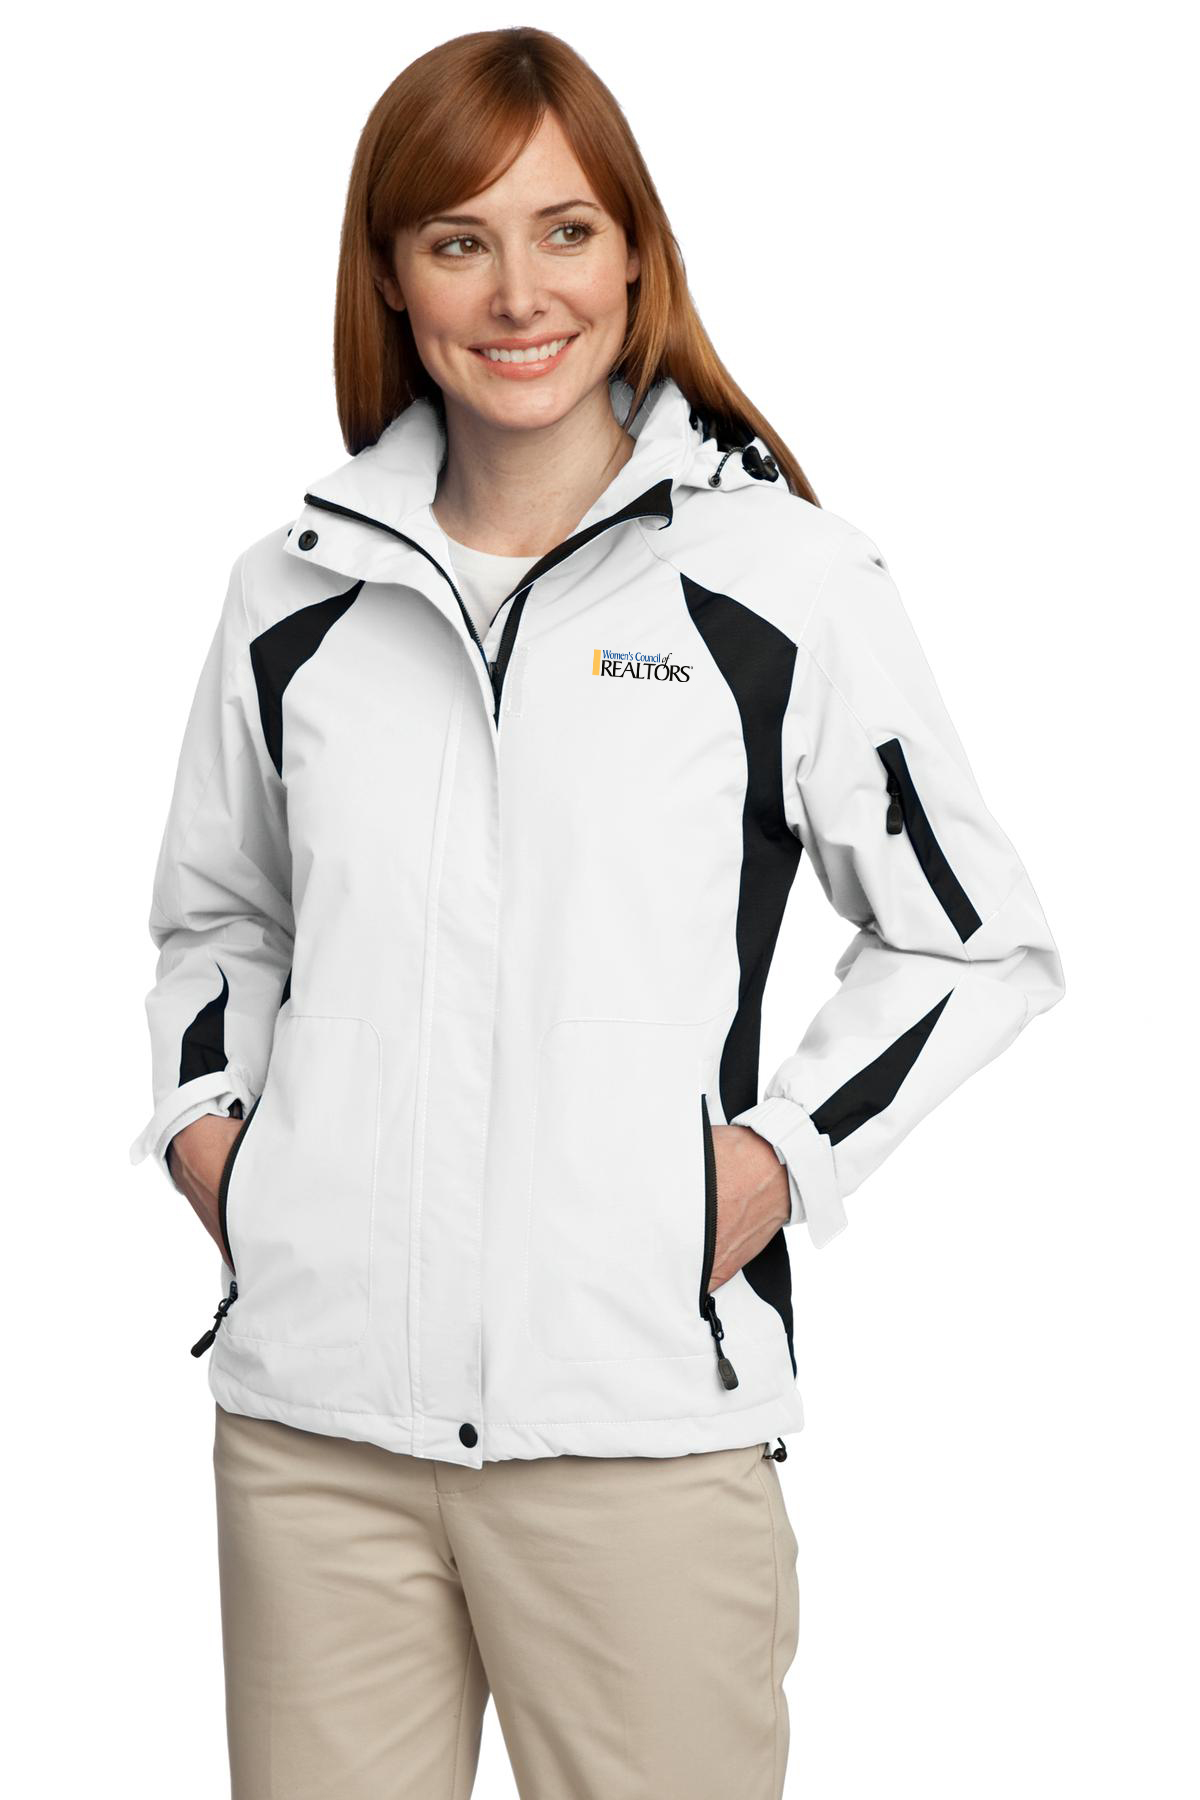 Ladies All-Season Jacket Outerwear,Jackets